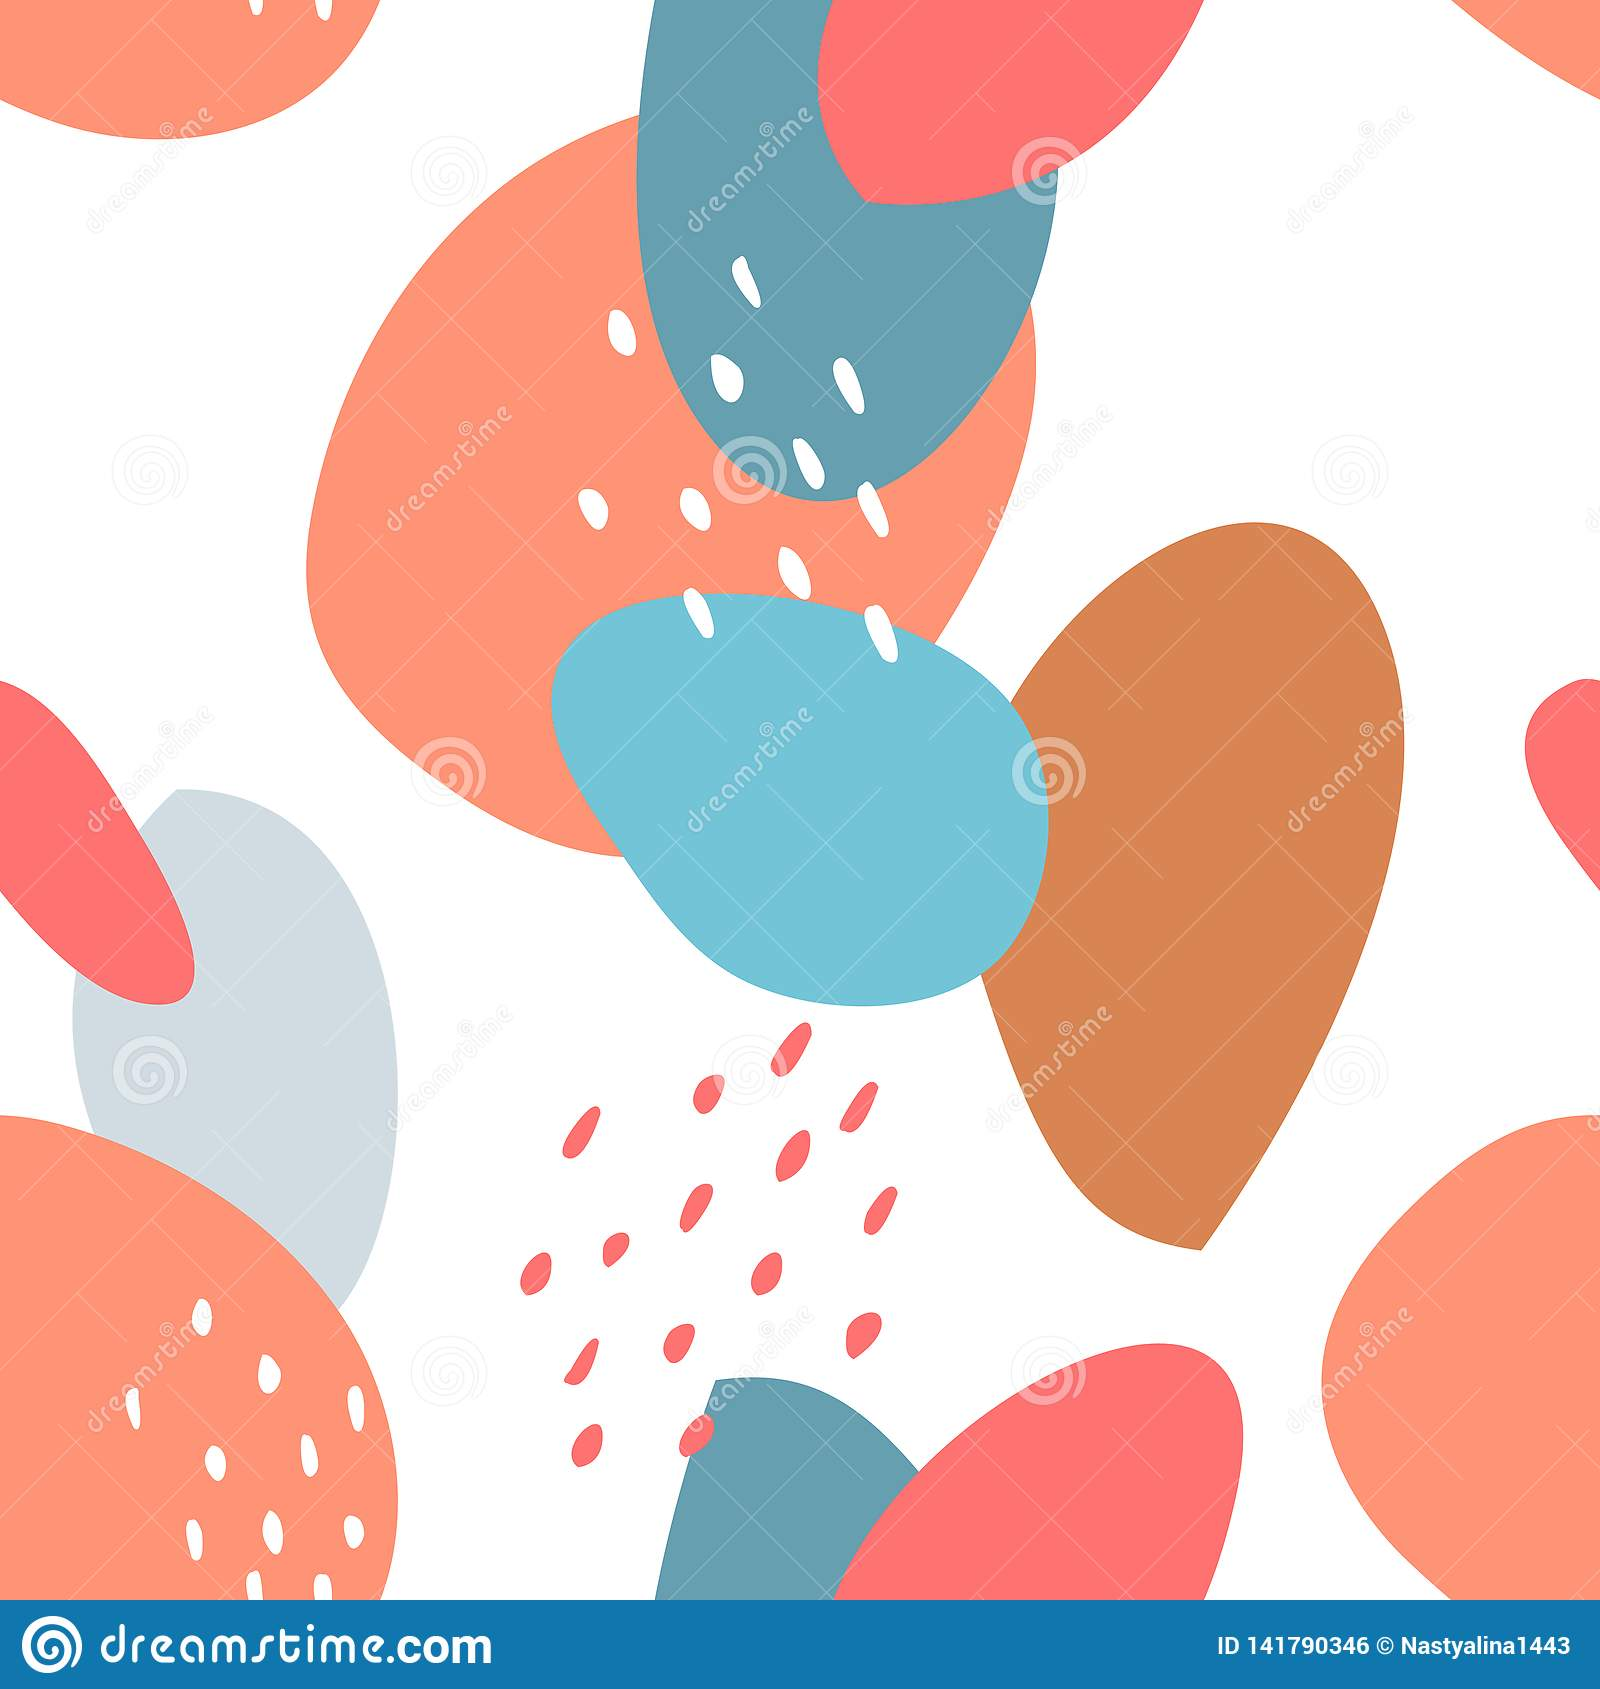 Seamless abstract pattern with spots and dots. Blue, beige, red, turquoise colors. Avan-garde cute cartoon background.